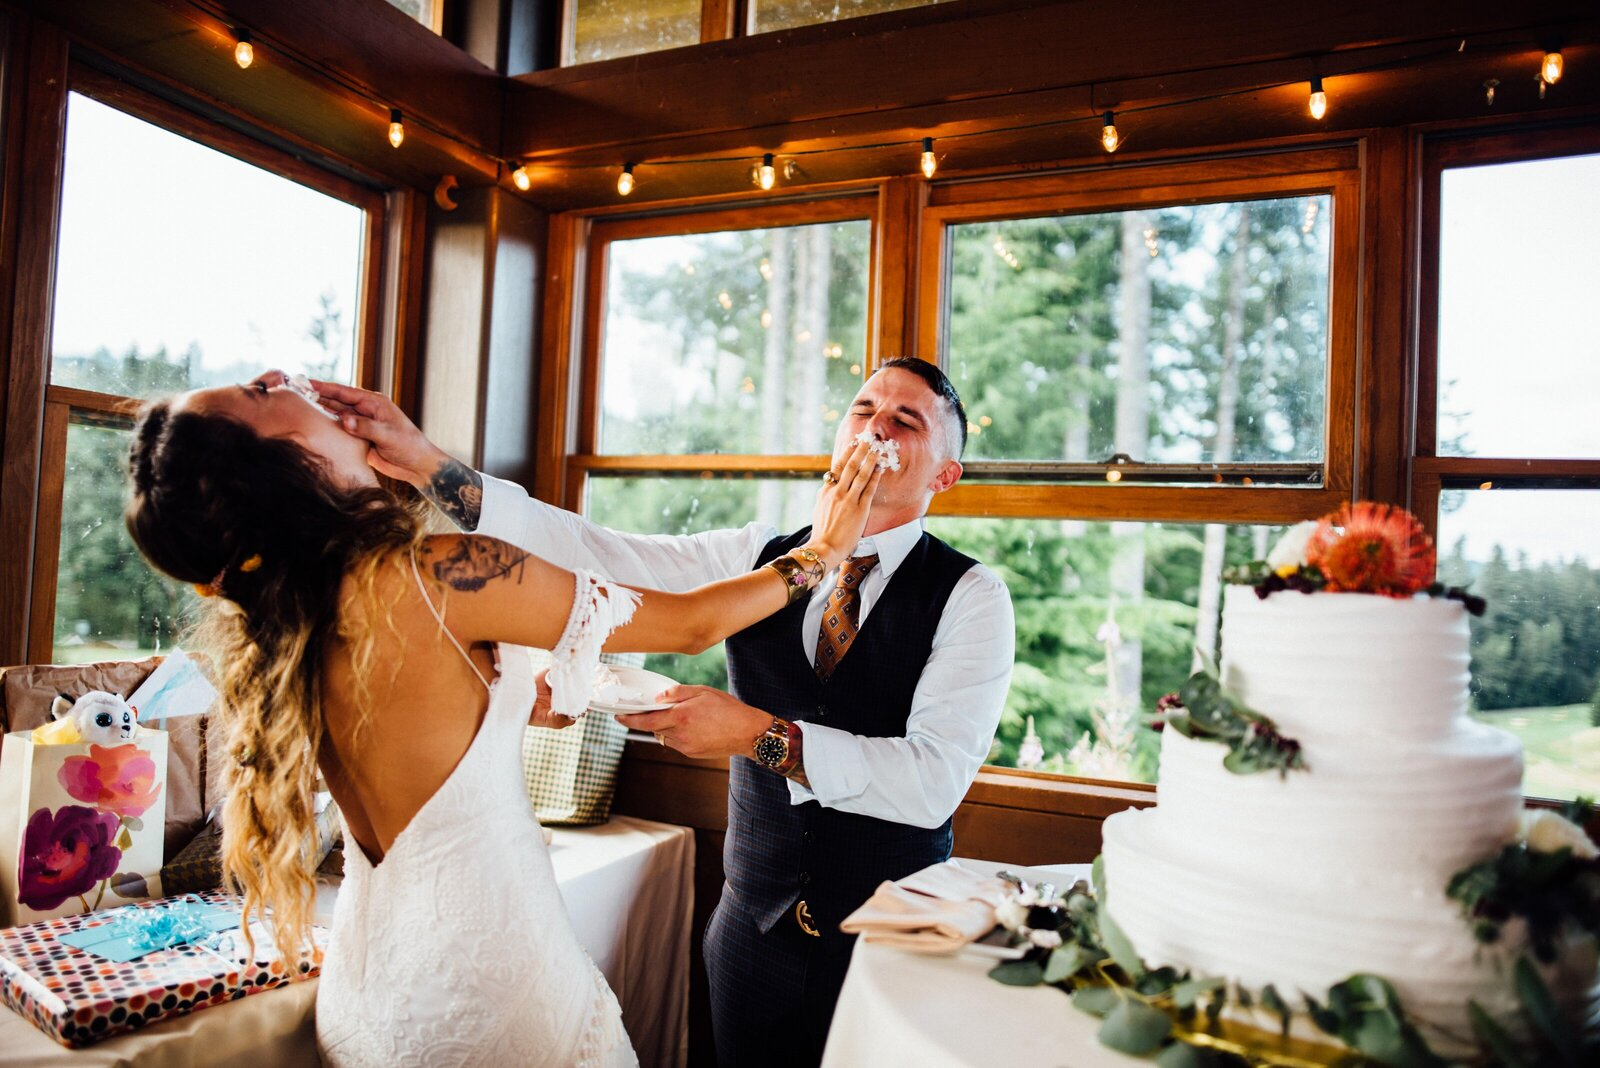 Consider a Mount Rainier National Park Elopement in Washington State photographed by local Washington Elopement Photographer. Rebecca Anne Photography.